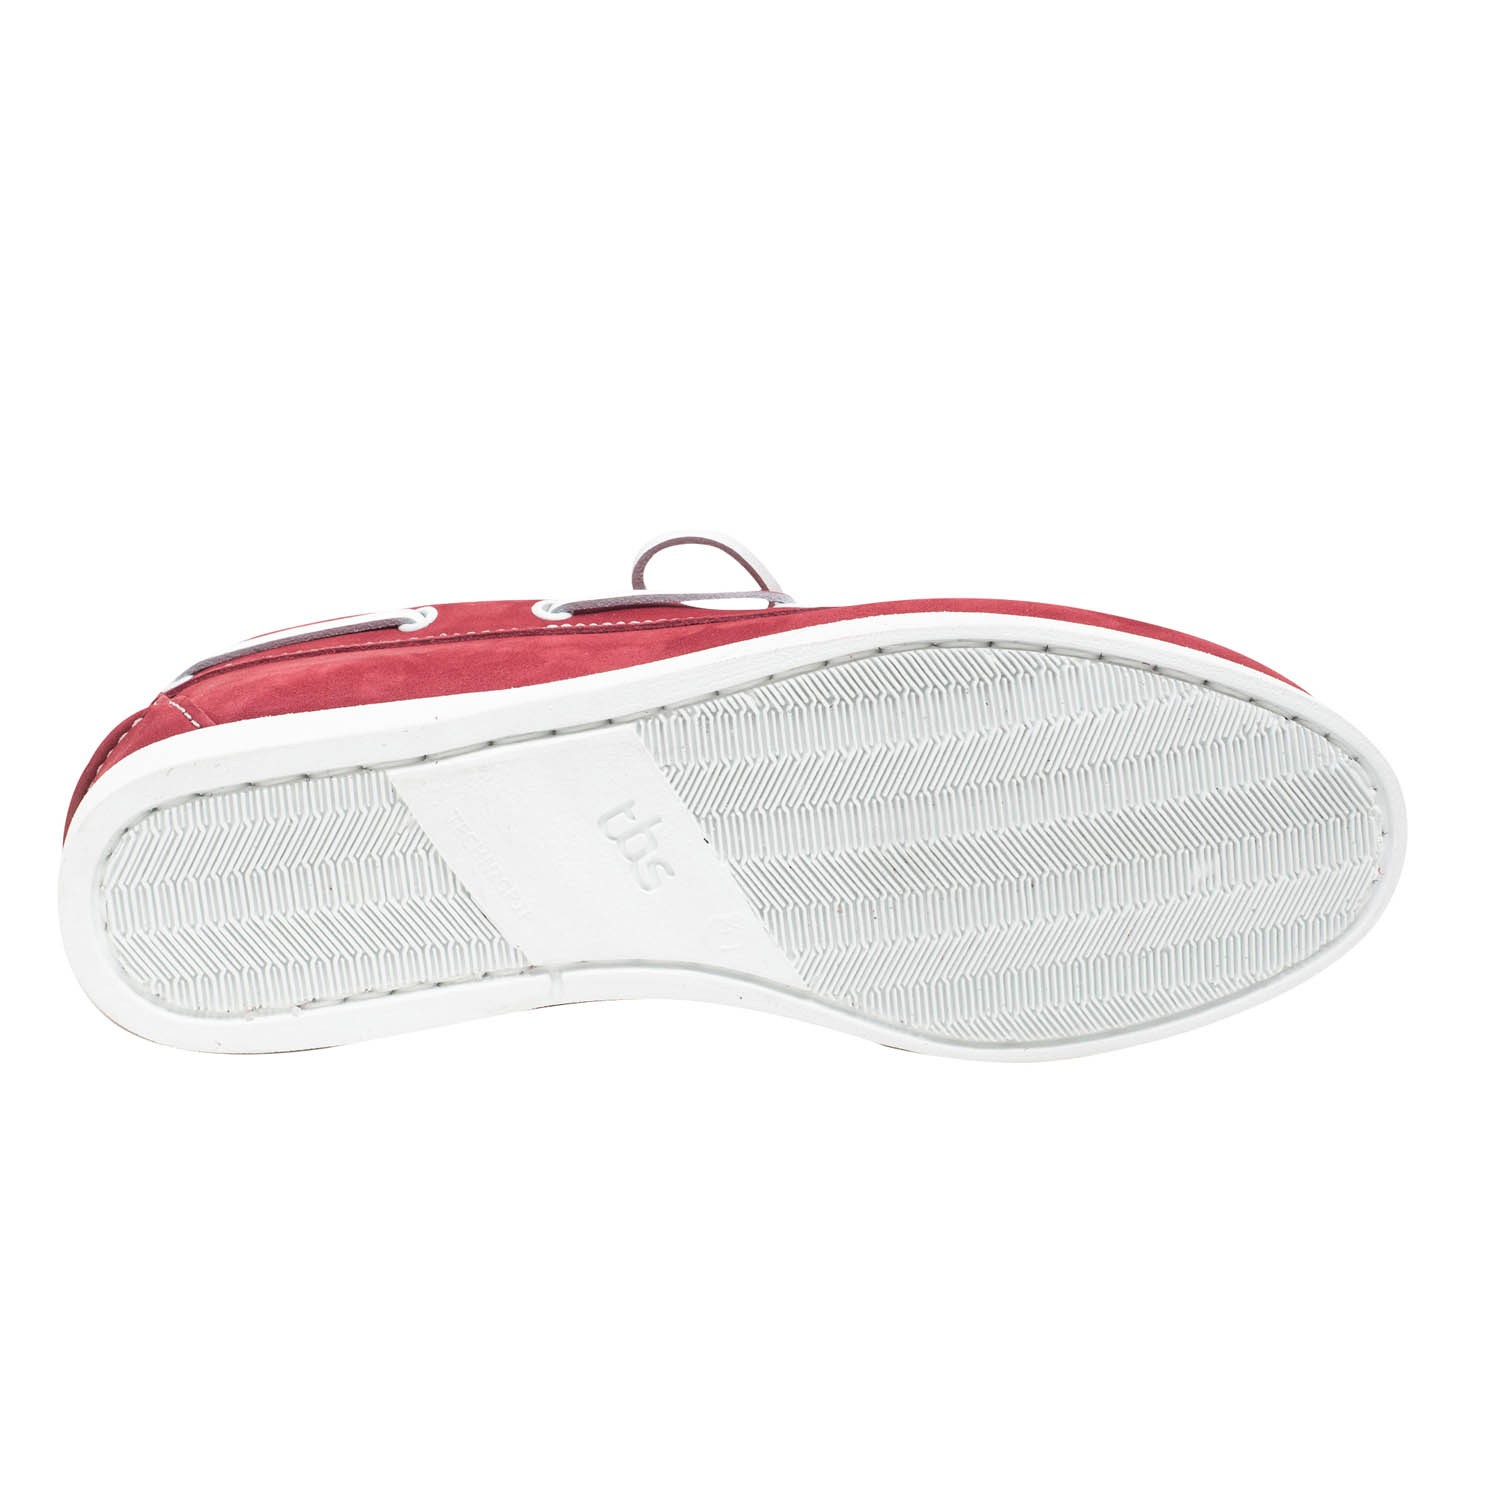 Achat PhenisTbs Chaussures Cuir Rouge Bateau 0wnyN8Ovm